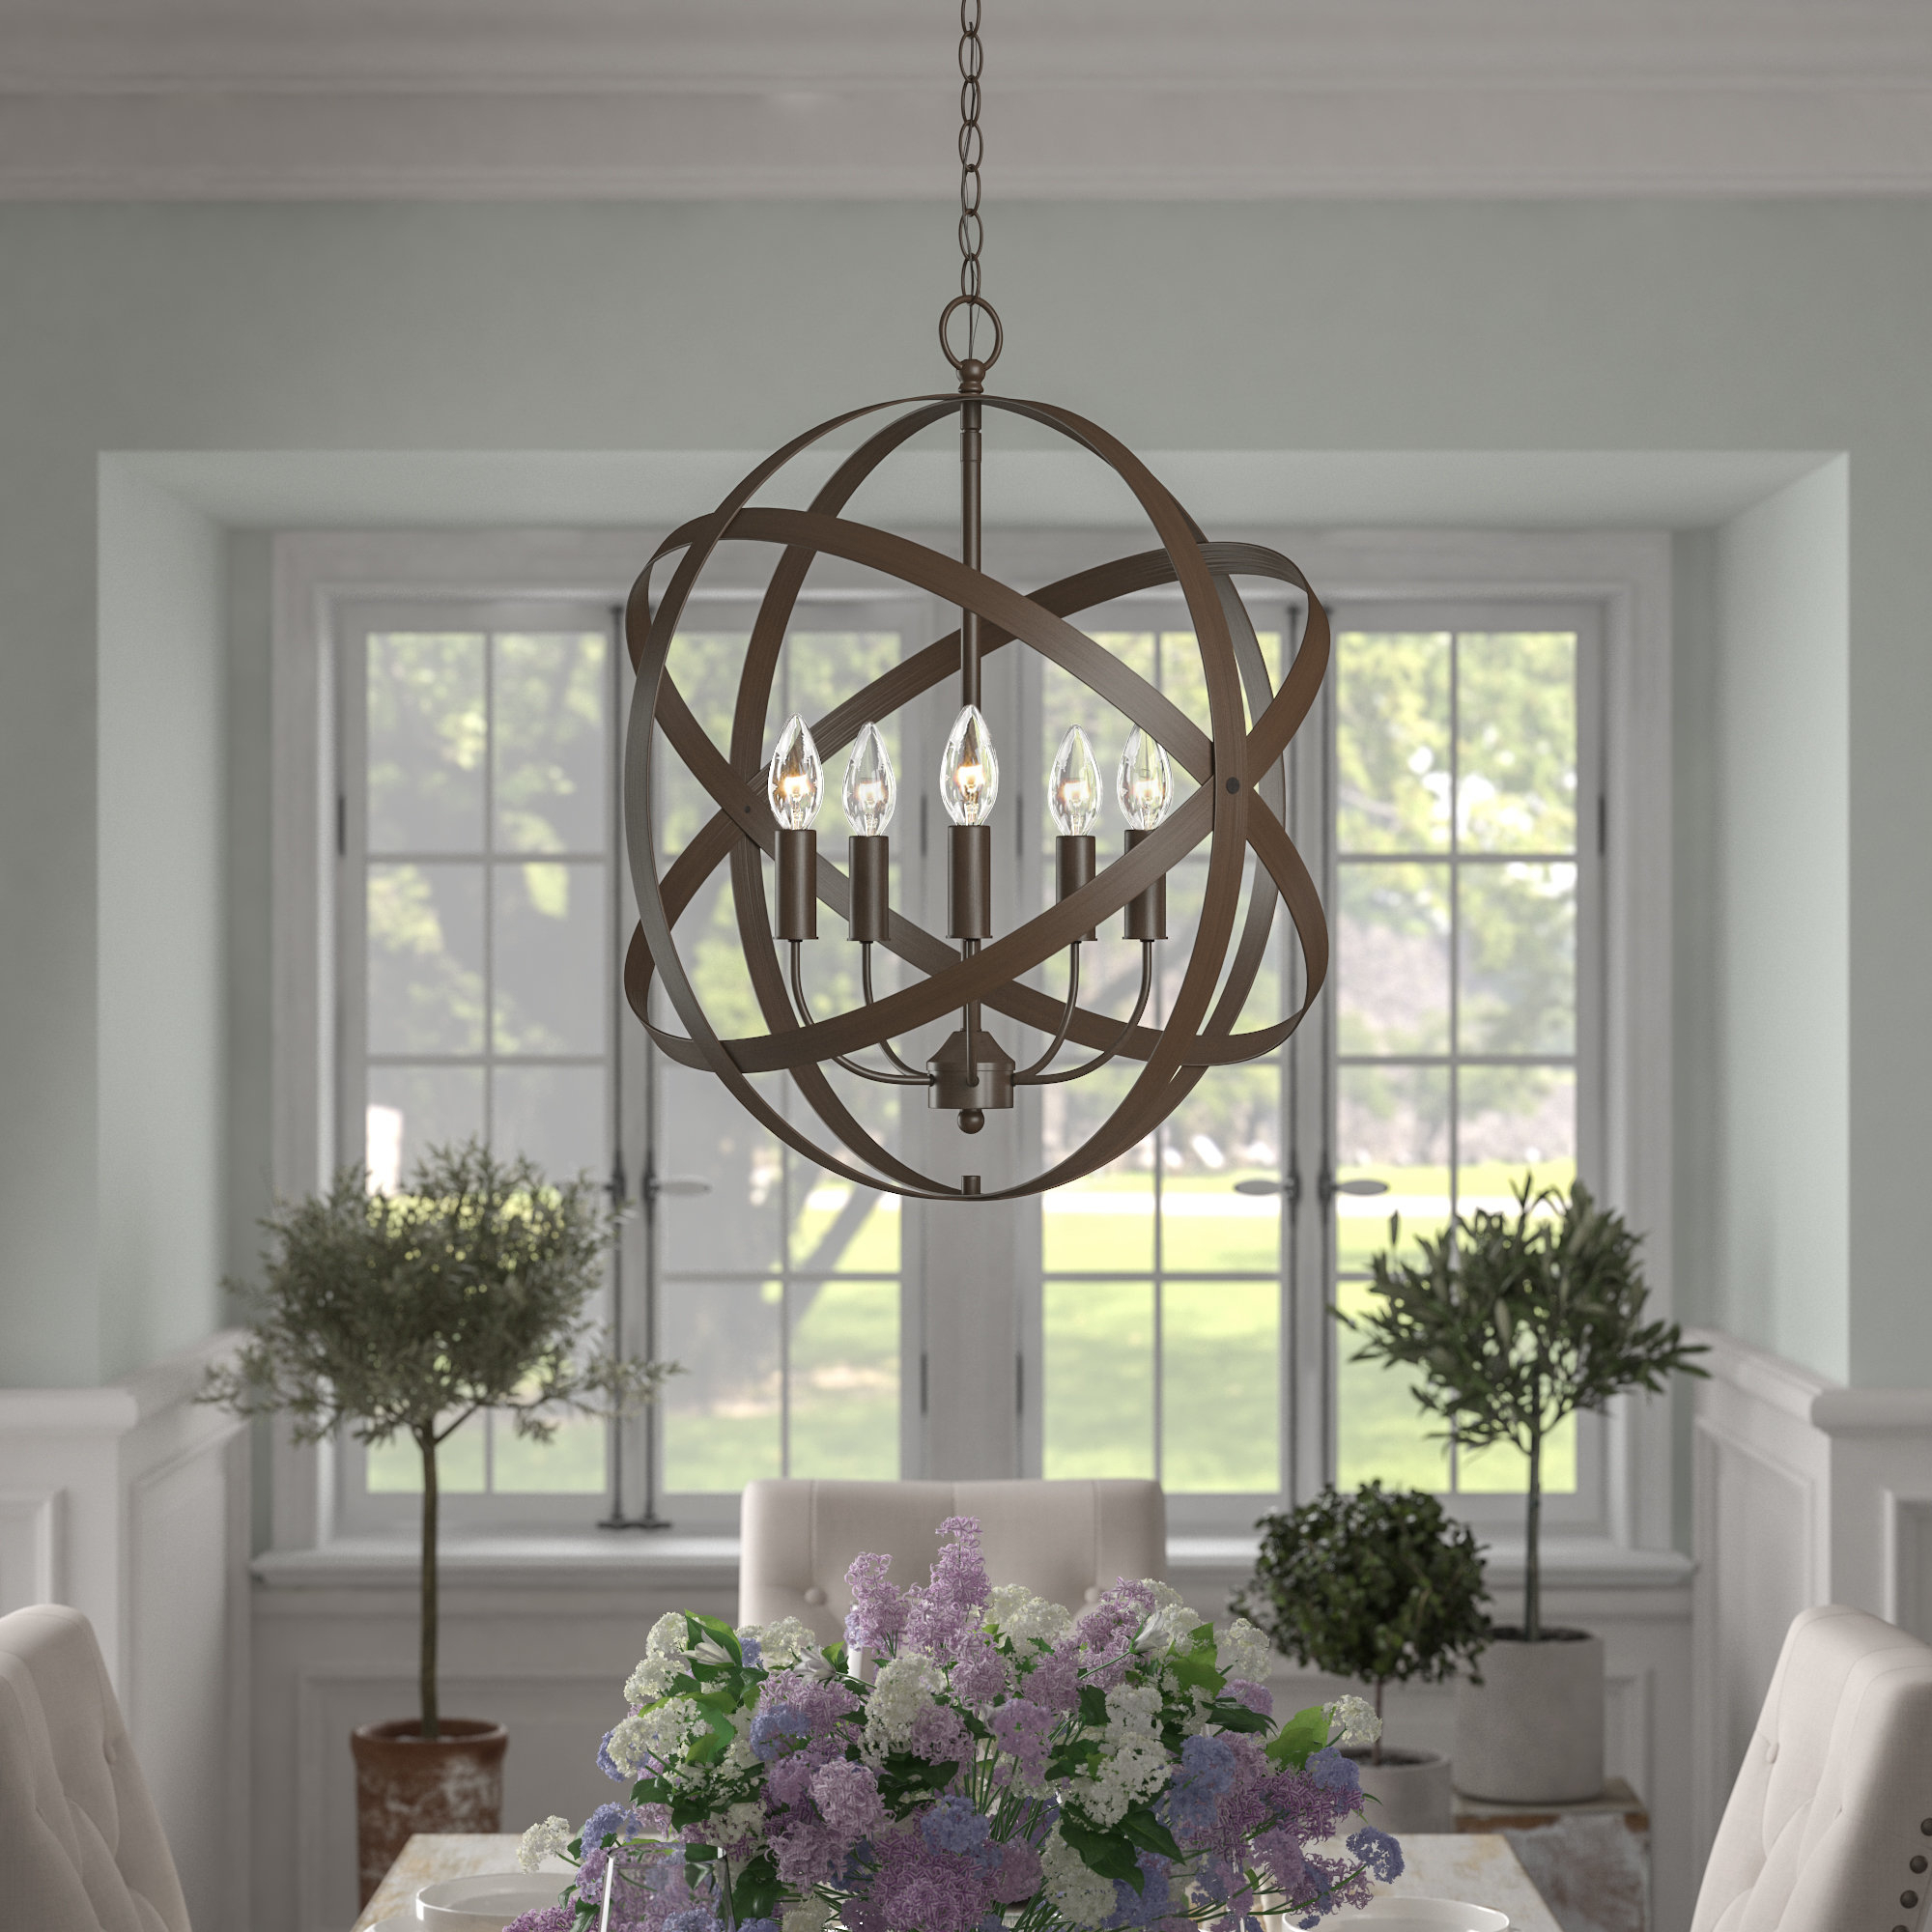 Della 5 Light Globe Chandelier For Verlene Foyer 5 Light Globe Chandeliers (View 7 of 30)